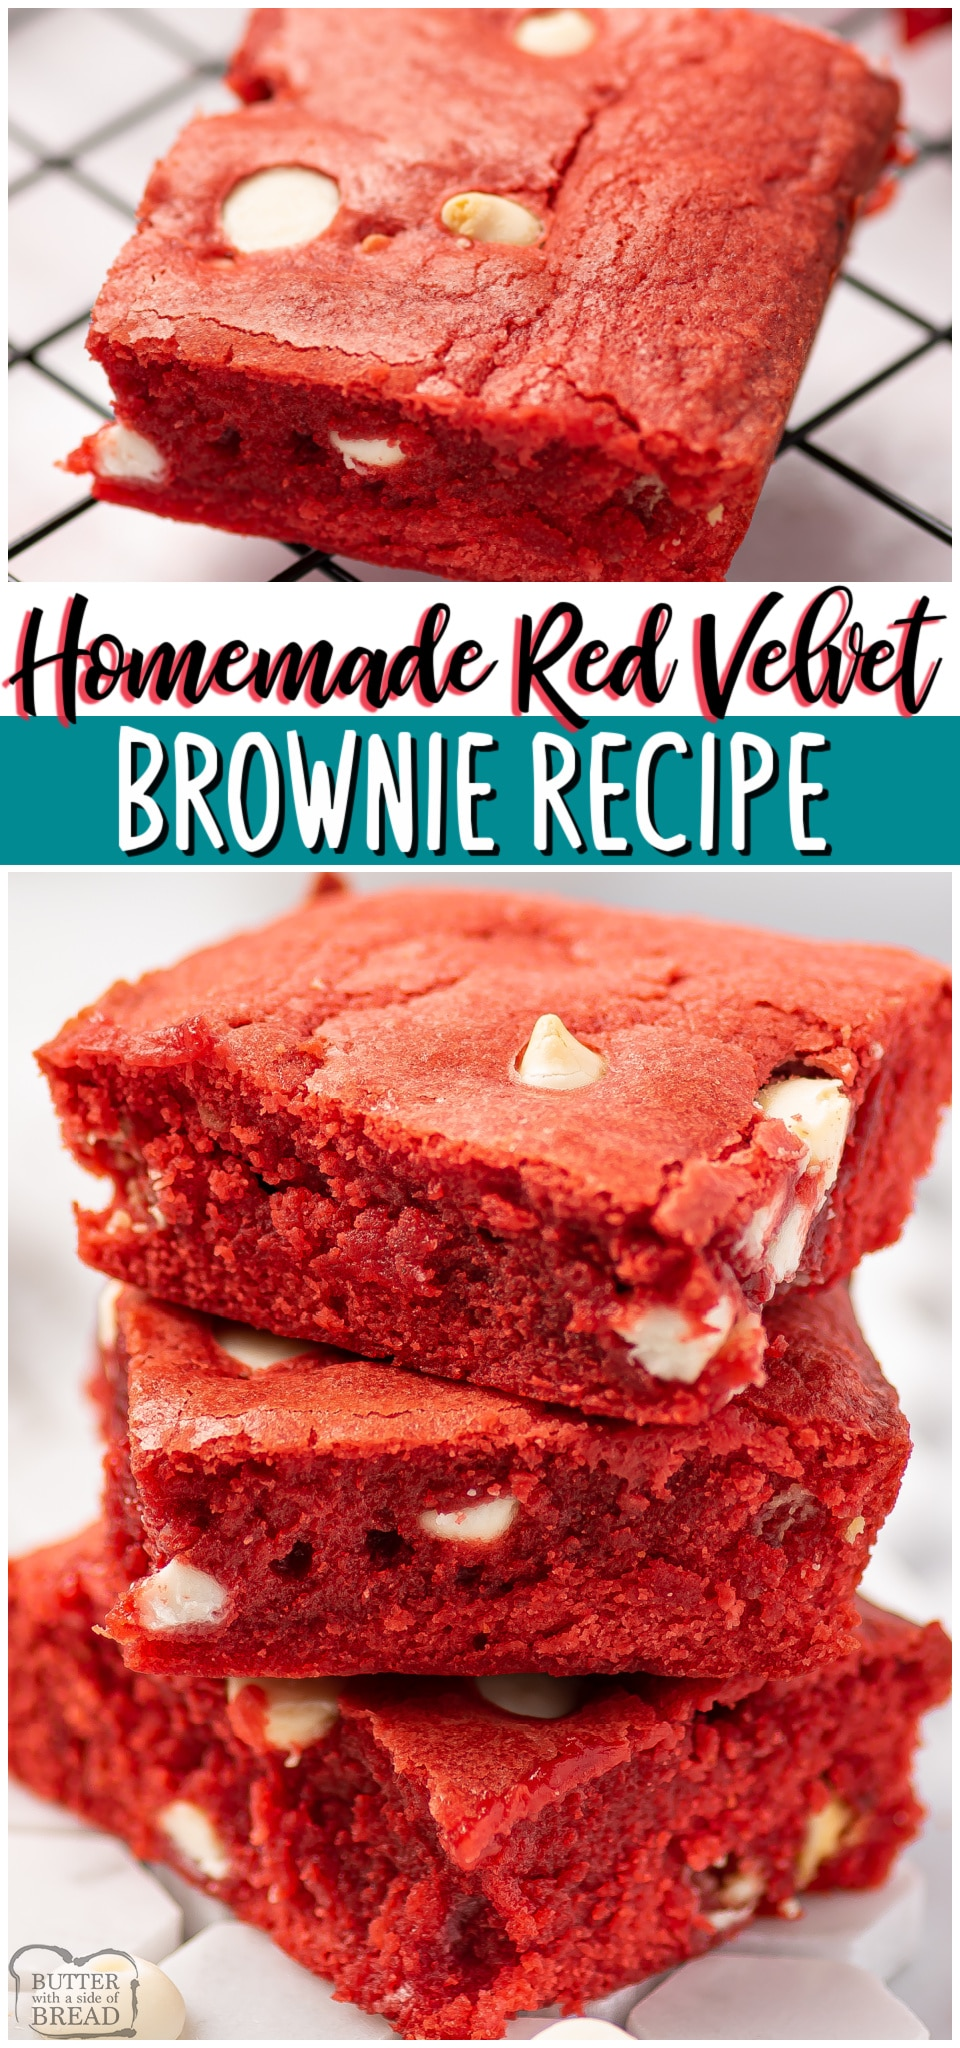 Red velvet brownies are a rich, chocolaty brownie with red velvet color, scattered with chocolate chips. Homemade Red Velvet Brownies perfect for Valentine's day!